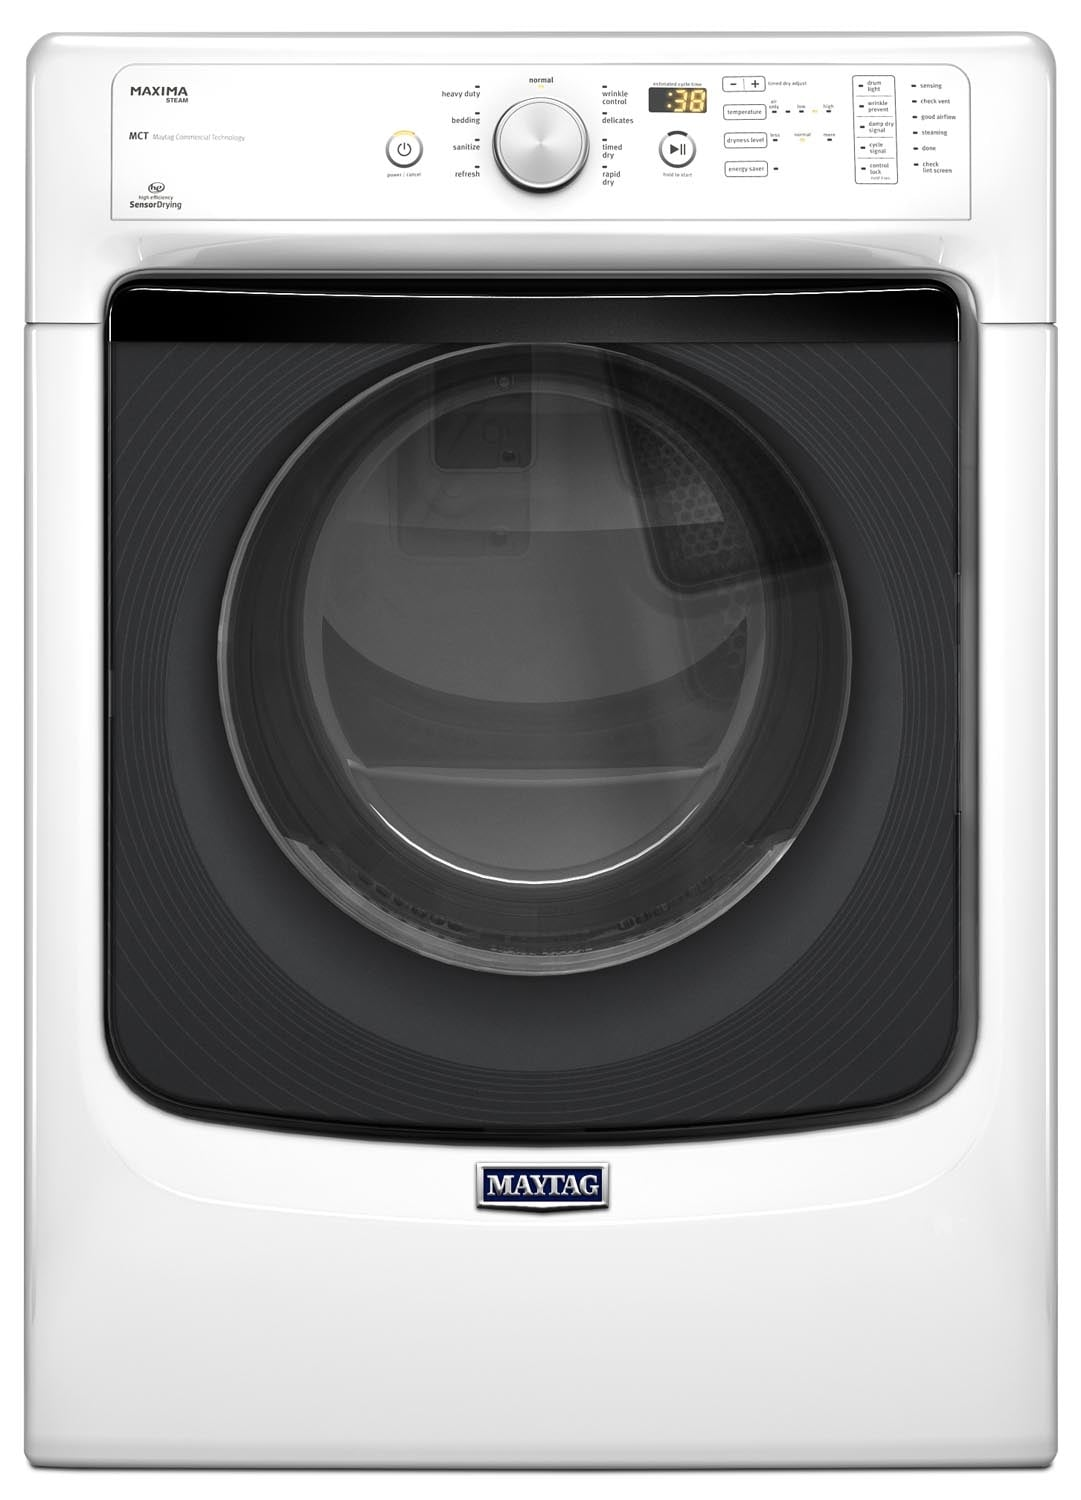 Washers and Dryers - Maytag Maxima® Gas Dryer (7.3 Cu. Ft.) MGD5100DW